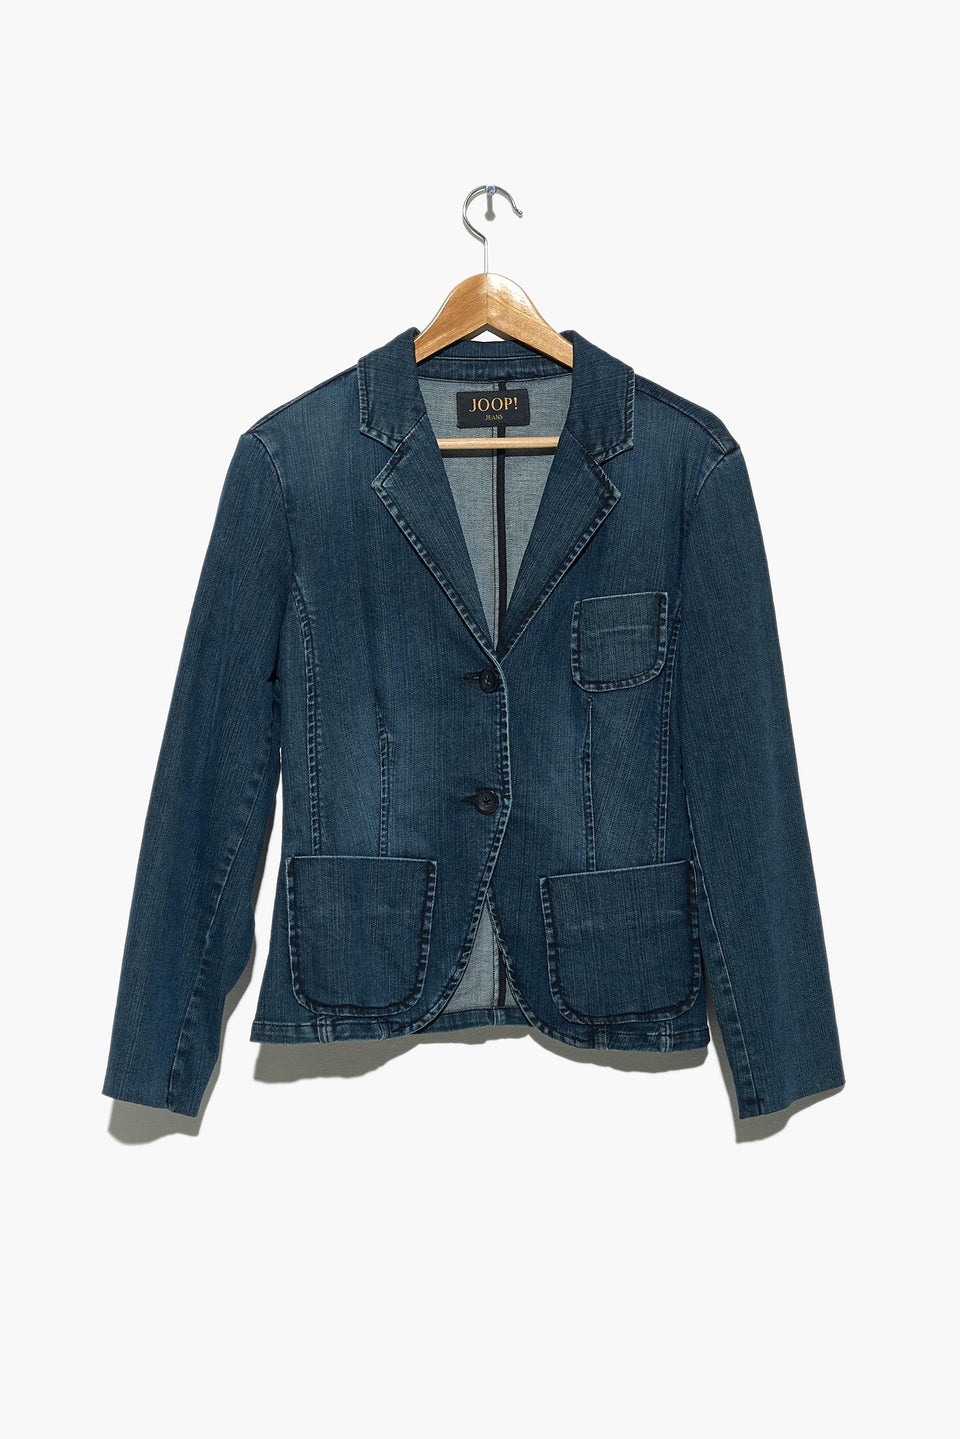 JOOP! denim blazer